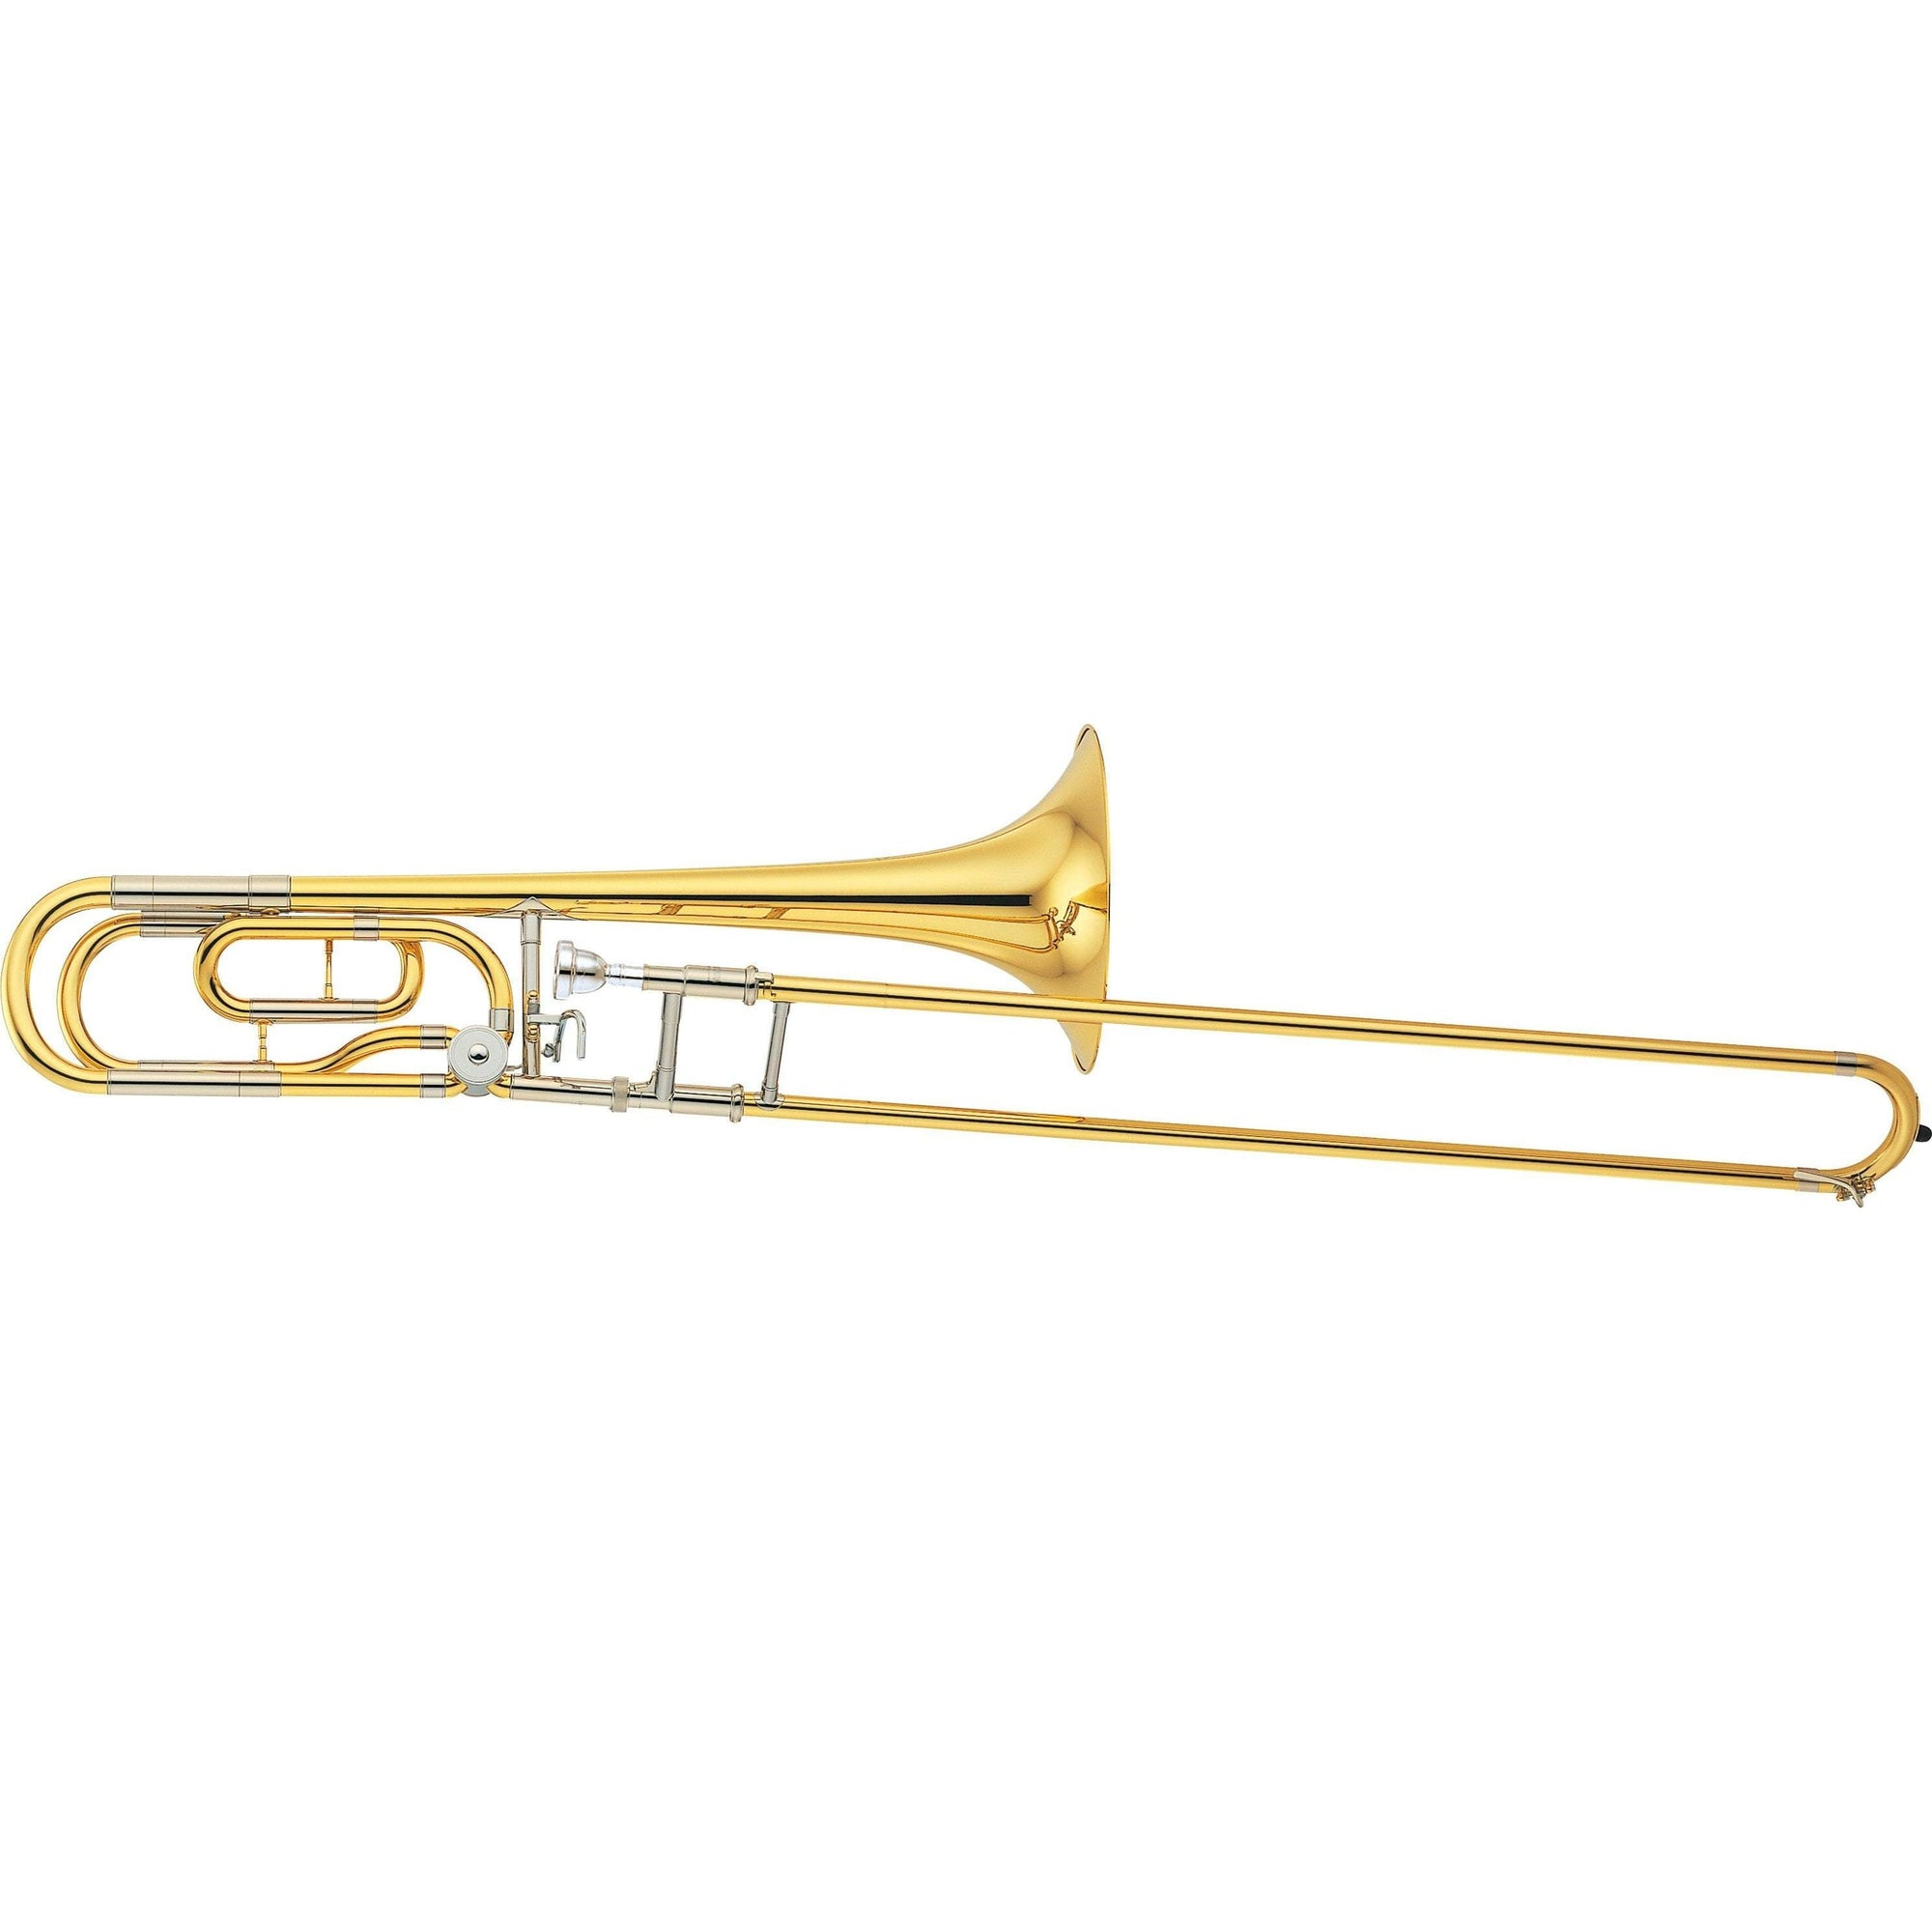 Yamaha - YSL-640 - Professional Bb/F Tenor Trombone-Trombone-Yamaha-Music Elements